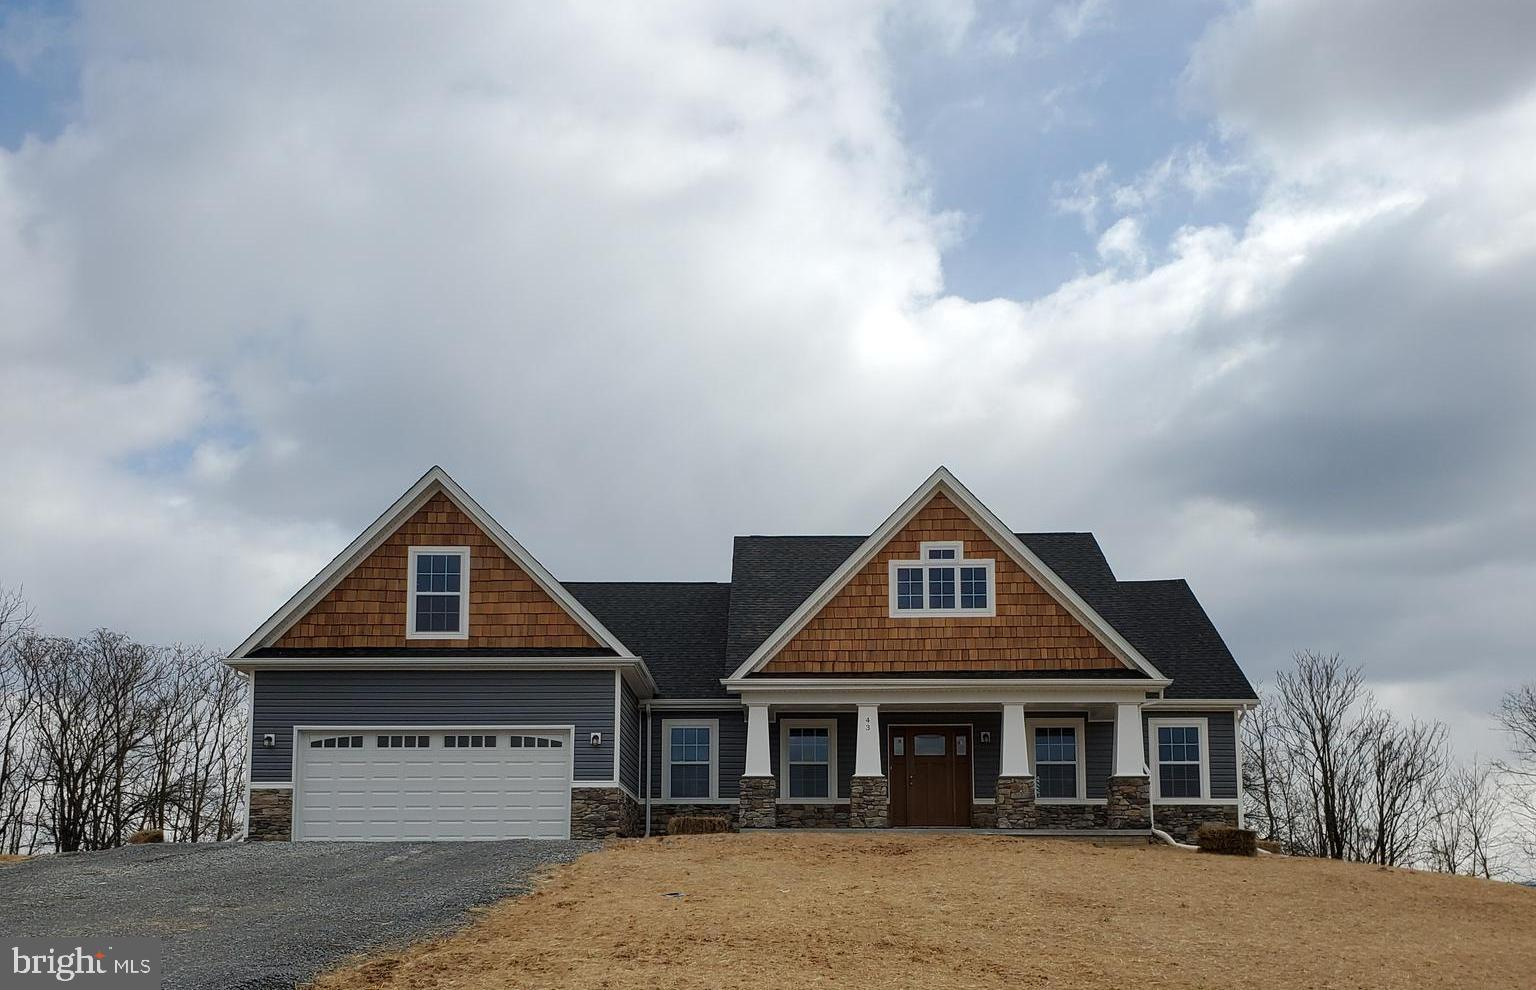 Under Construction ranch style home with mountain views. Quality construction in great location. Roa